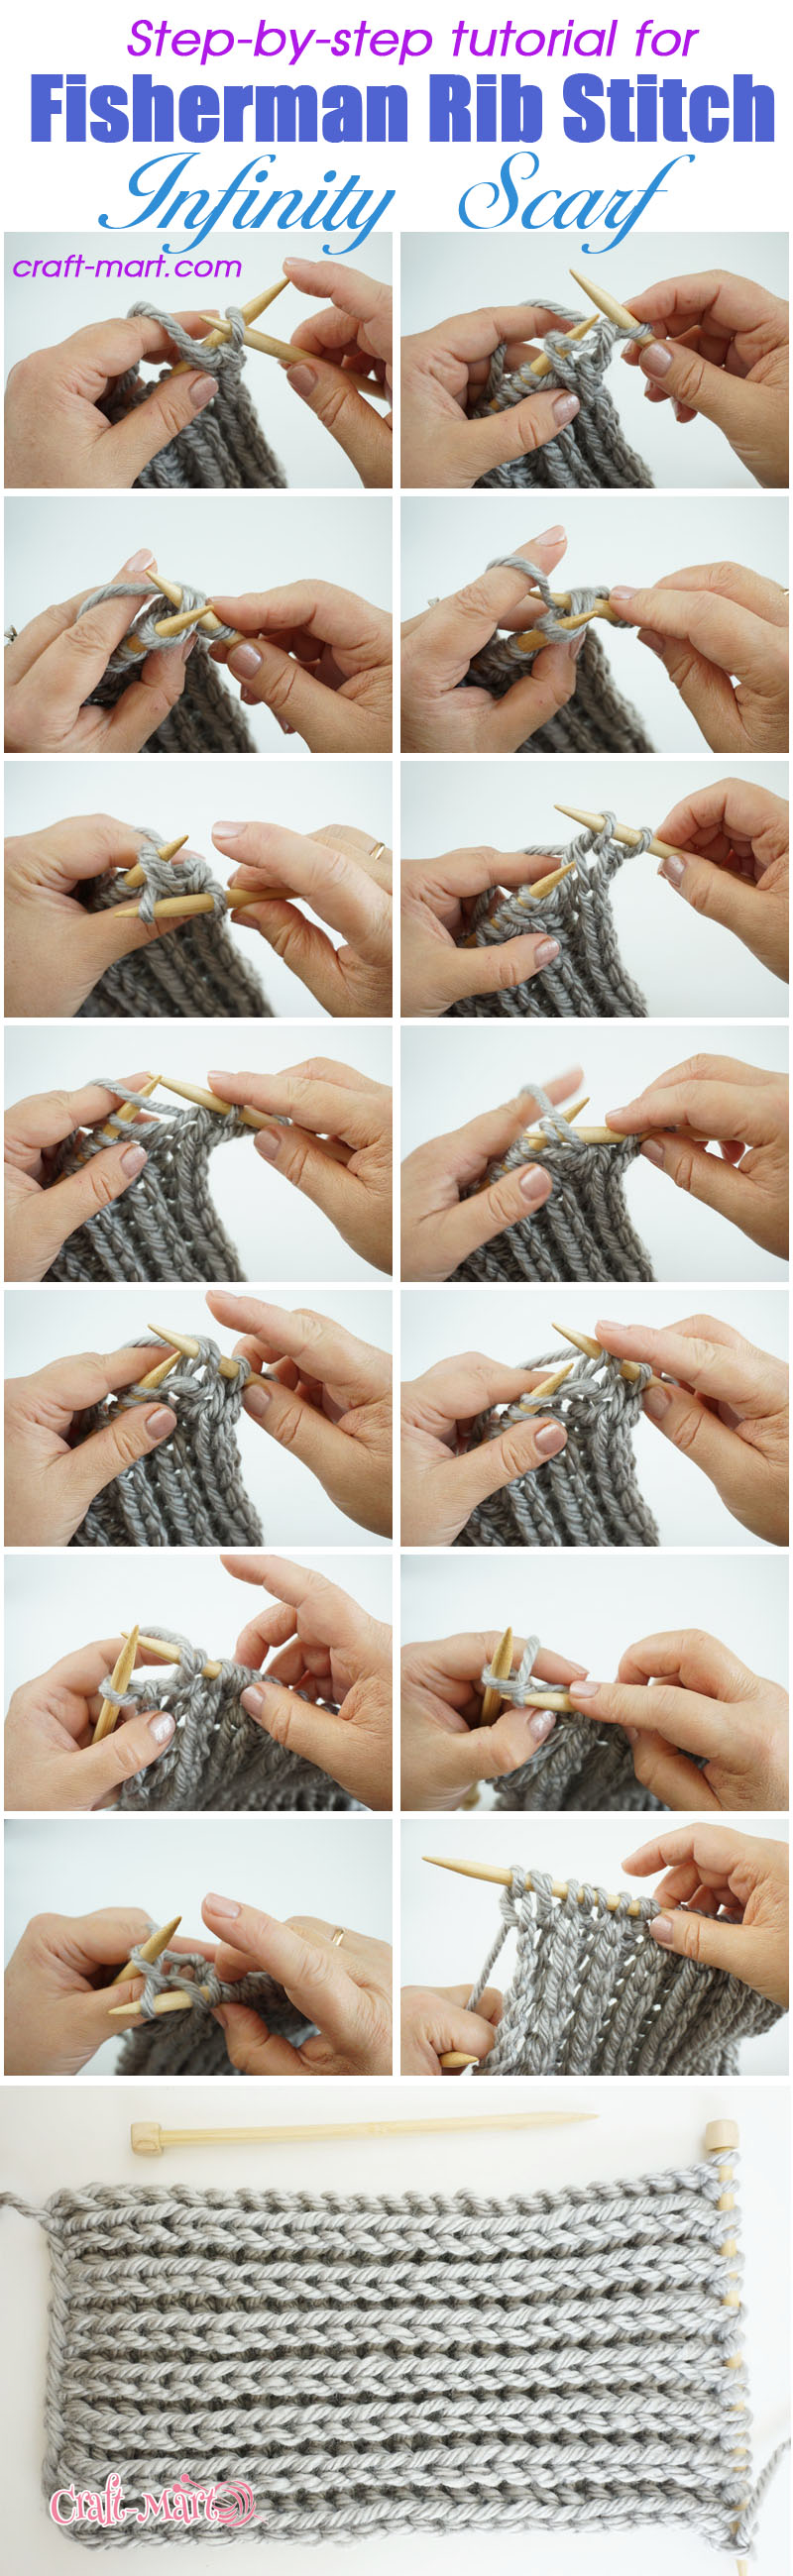 pattern for infinity scarf - fisherman rib knitted infinity scarf tutorial